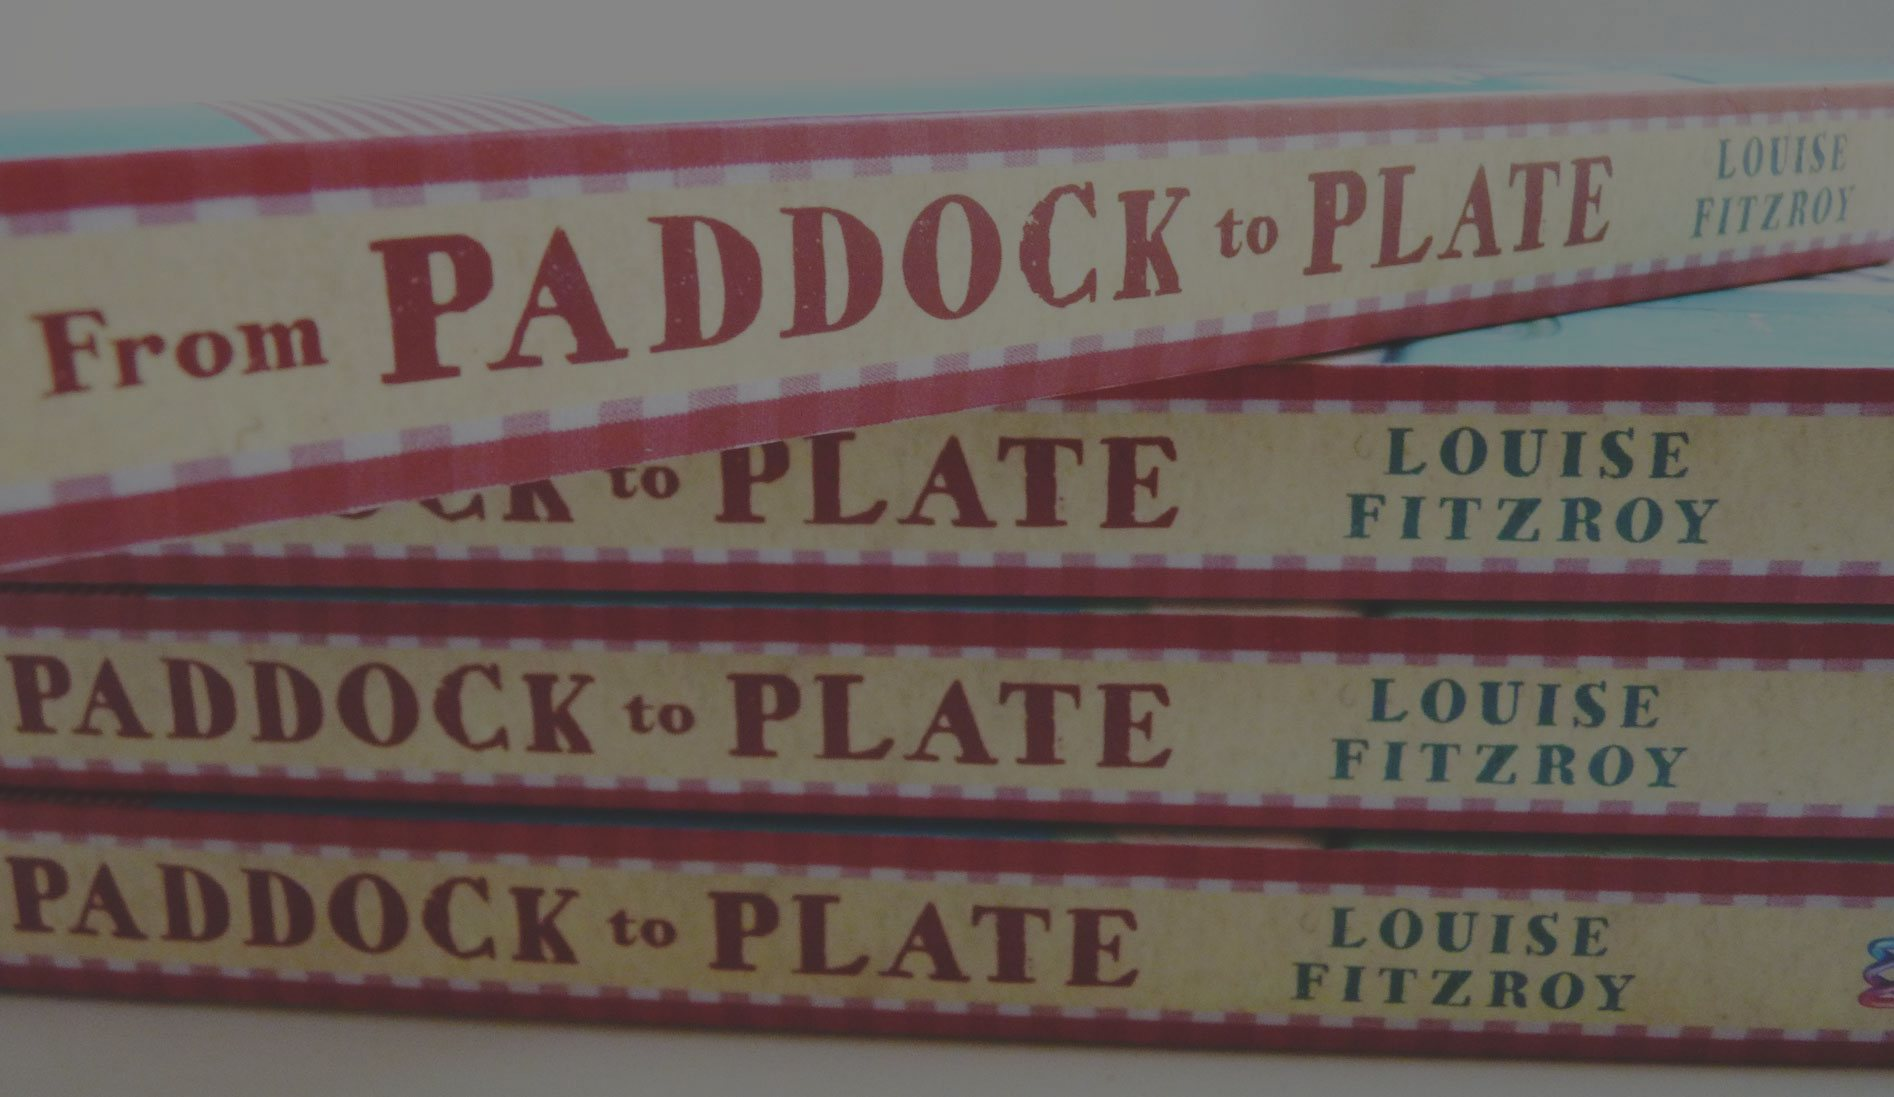 From Padddock to plate banner